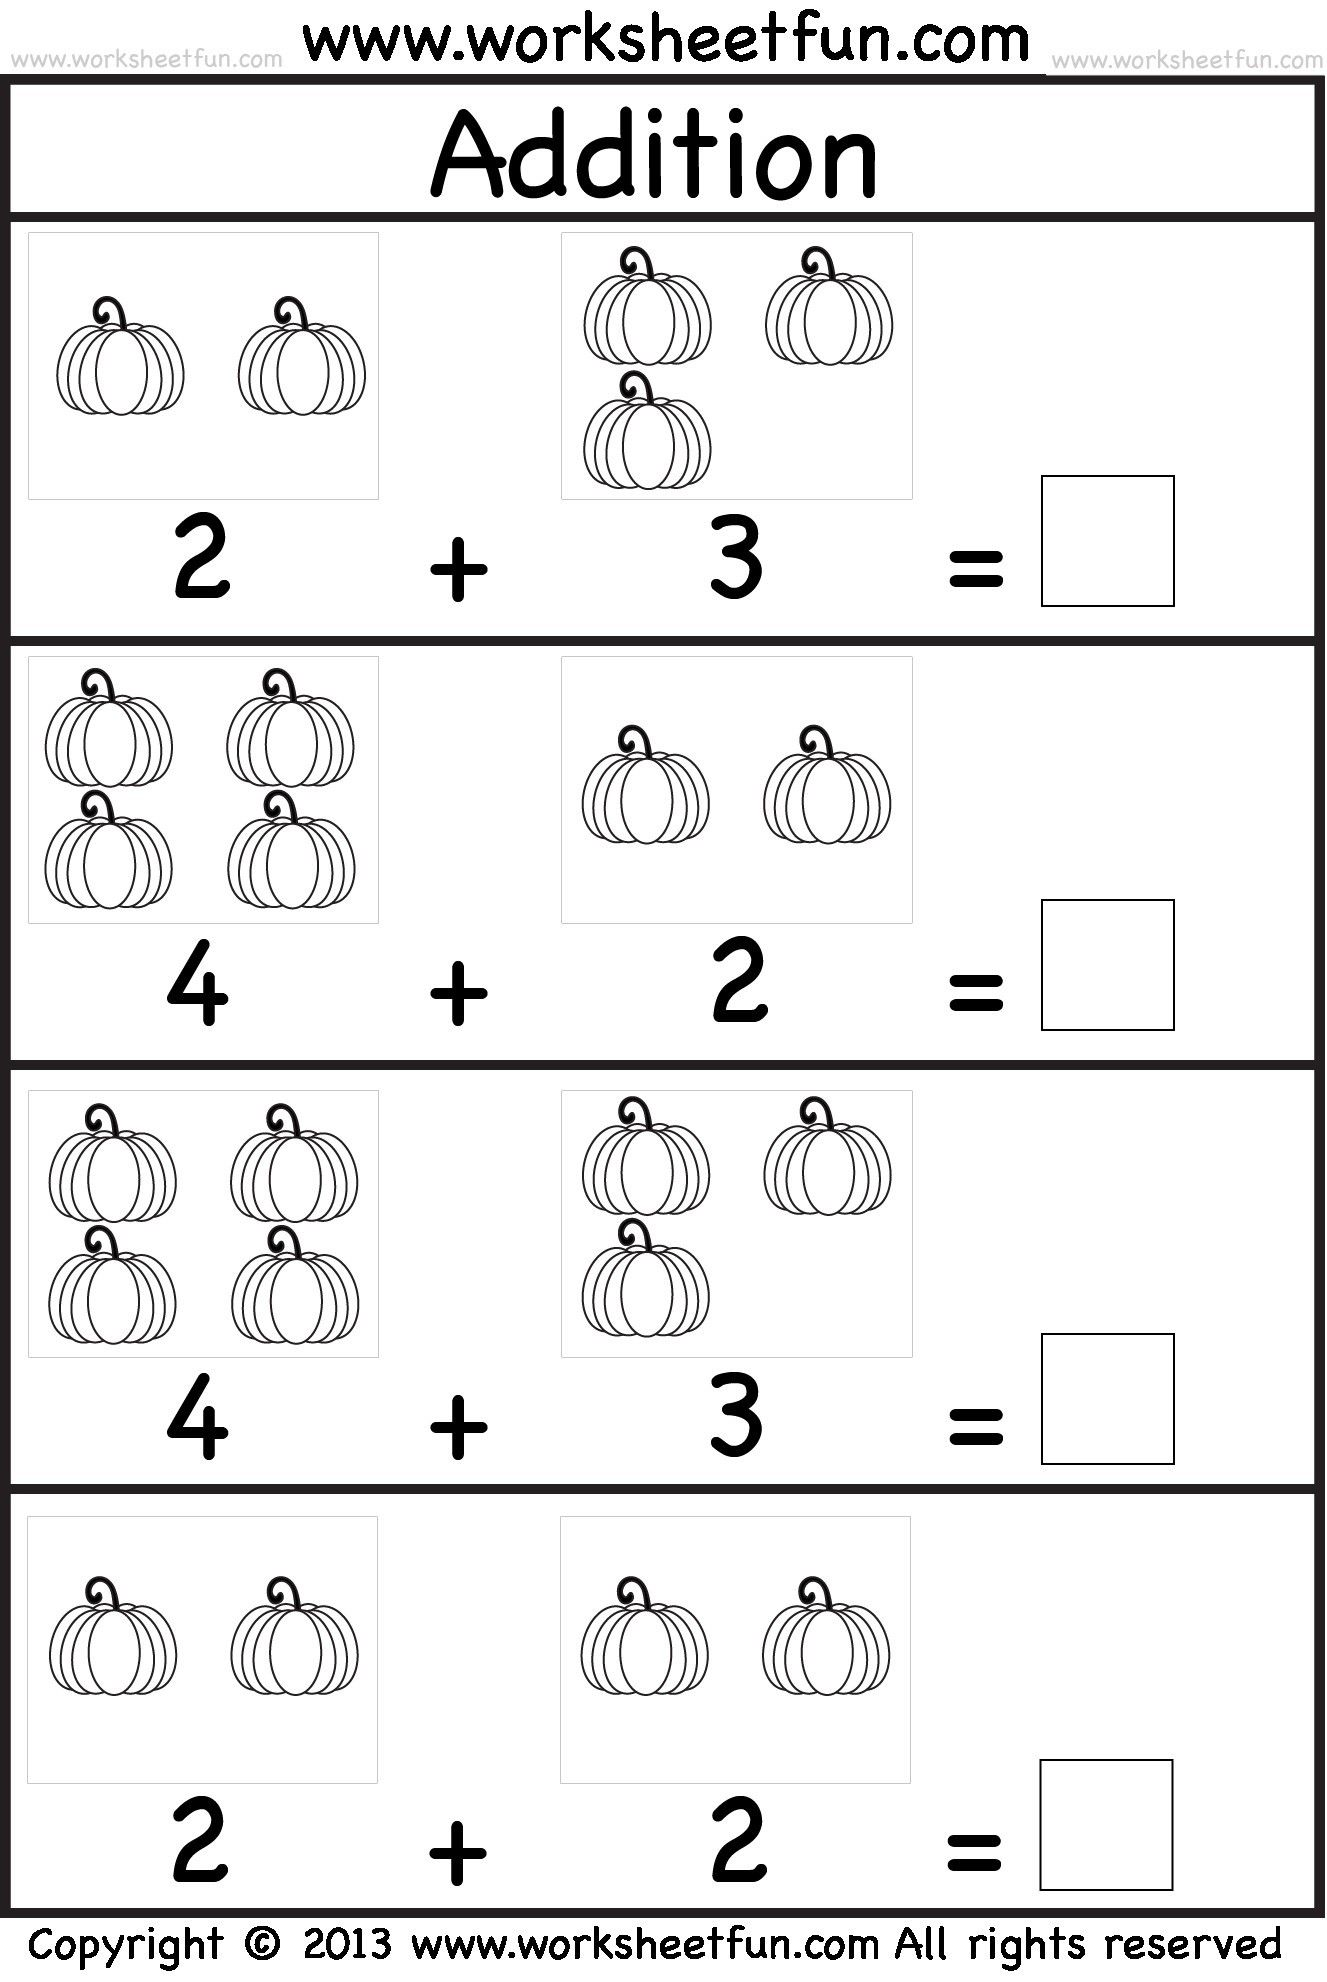 Number Bonds Rainbow Worksheet Valid Number Bond Dash Worksheet New Kindergarten Addition Math